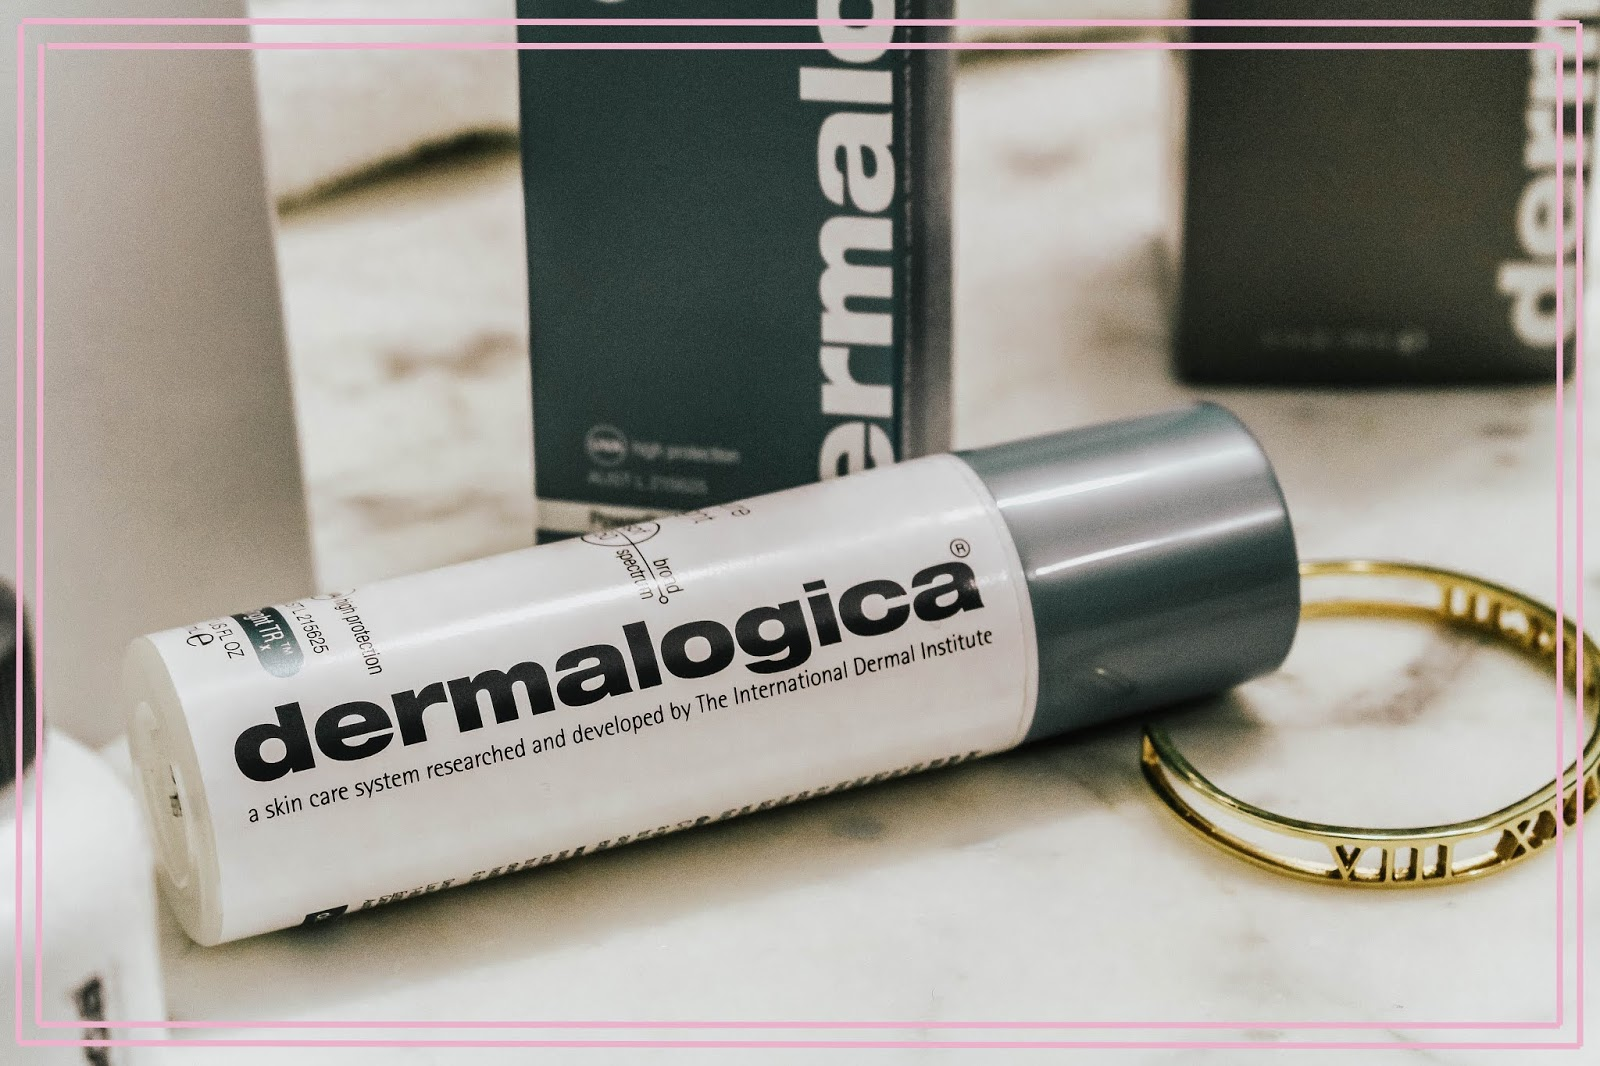 Dermalogica Pure Light SPF 50 Review for Mid Twenties